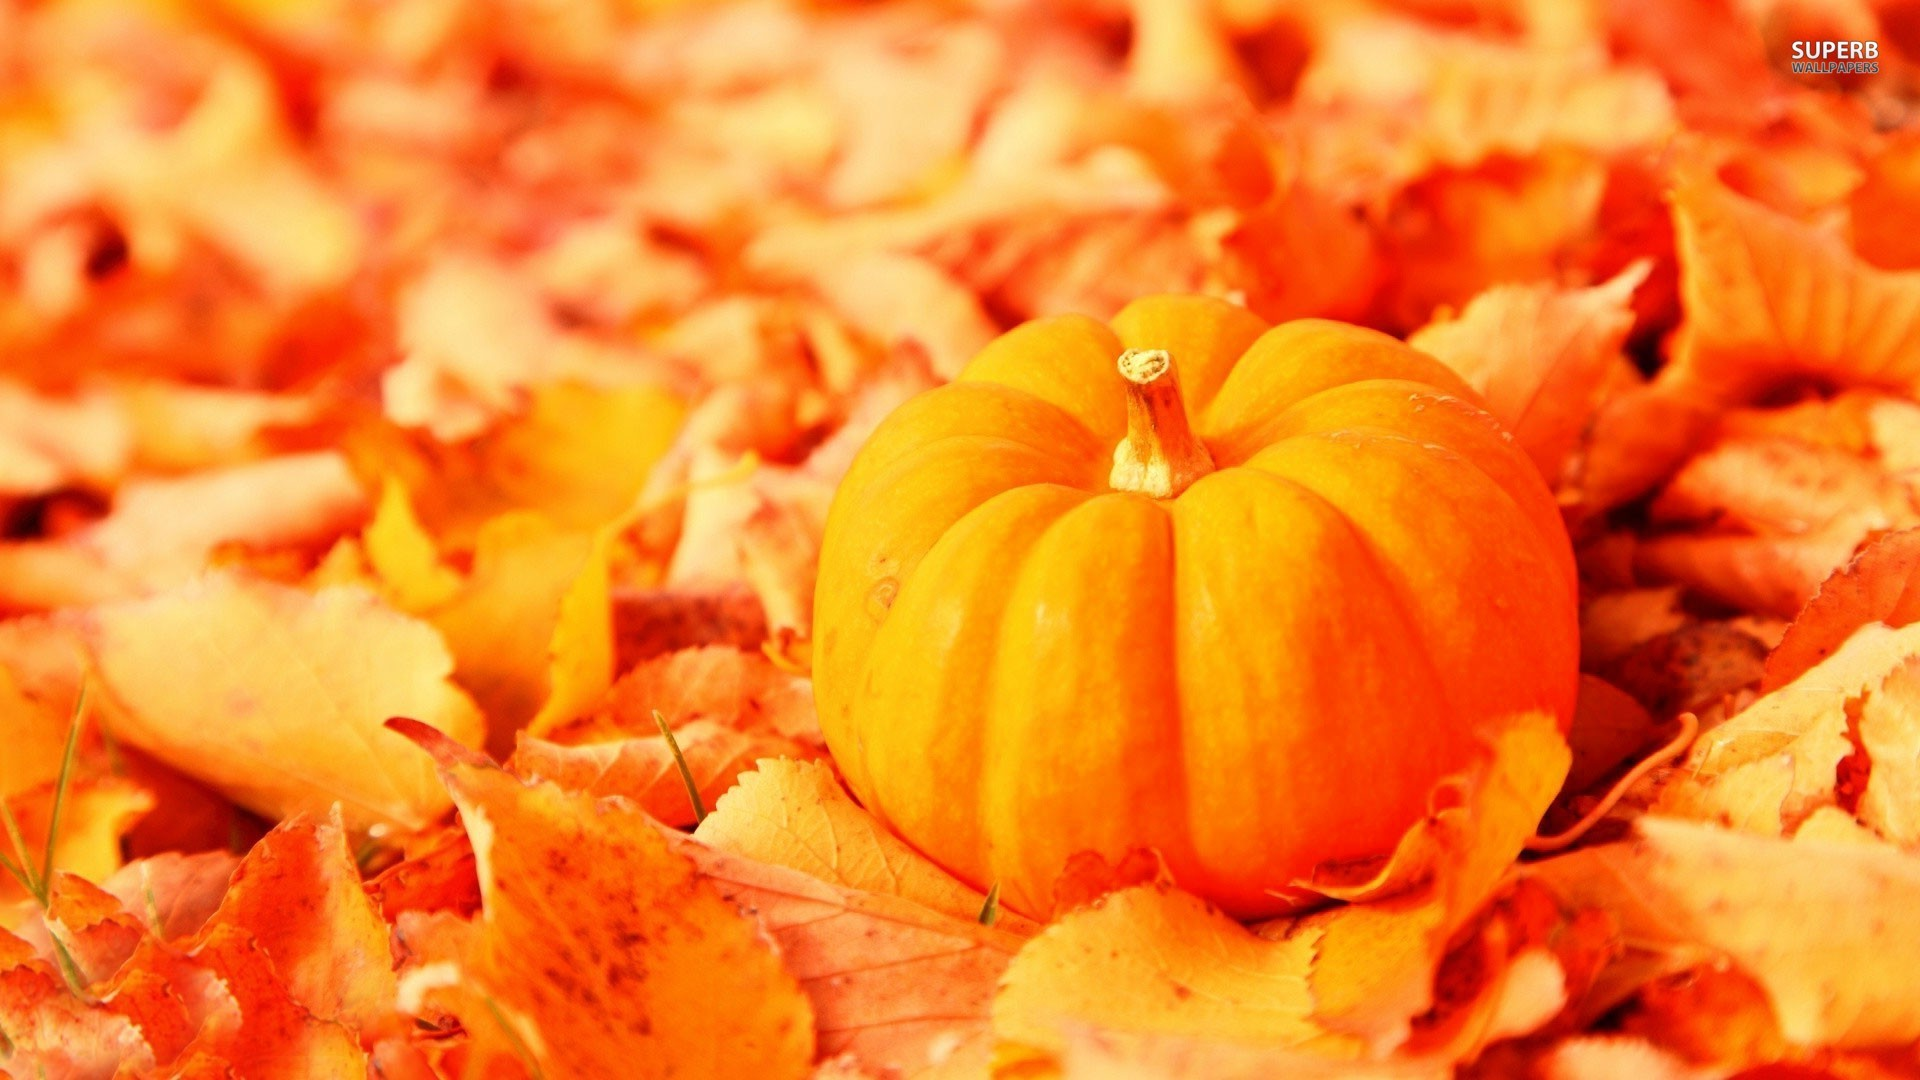 Fall Pumpkin Wallpaper and Screensavers 63 images 1920x1080